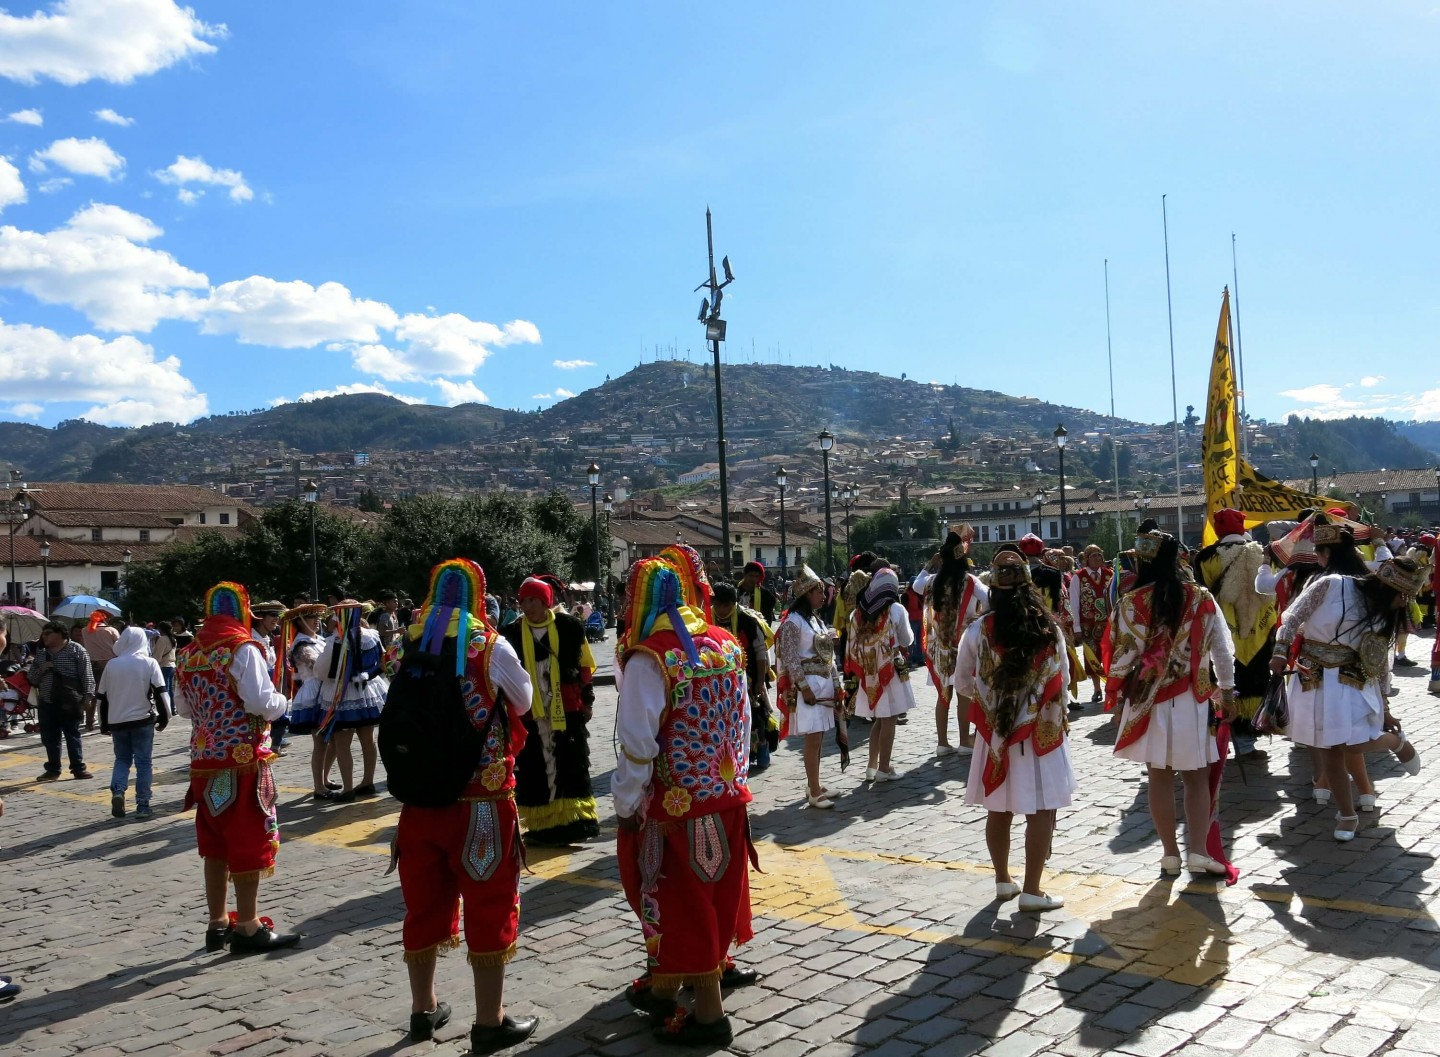 The main square in Cusco during a special festival. Cusco is a beautiful ancient city!